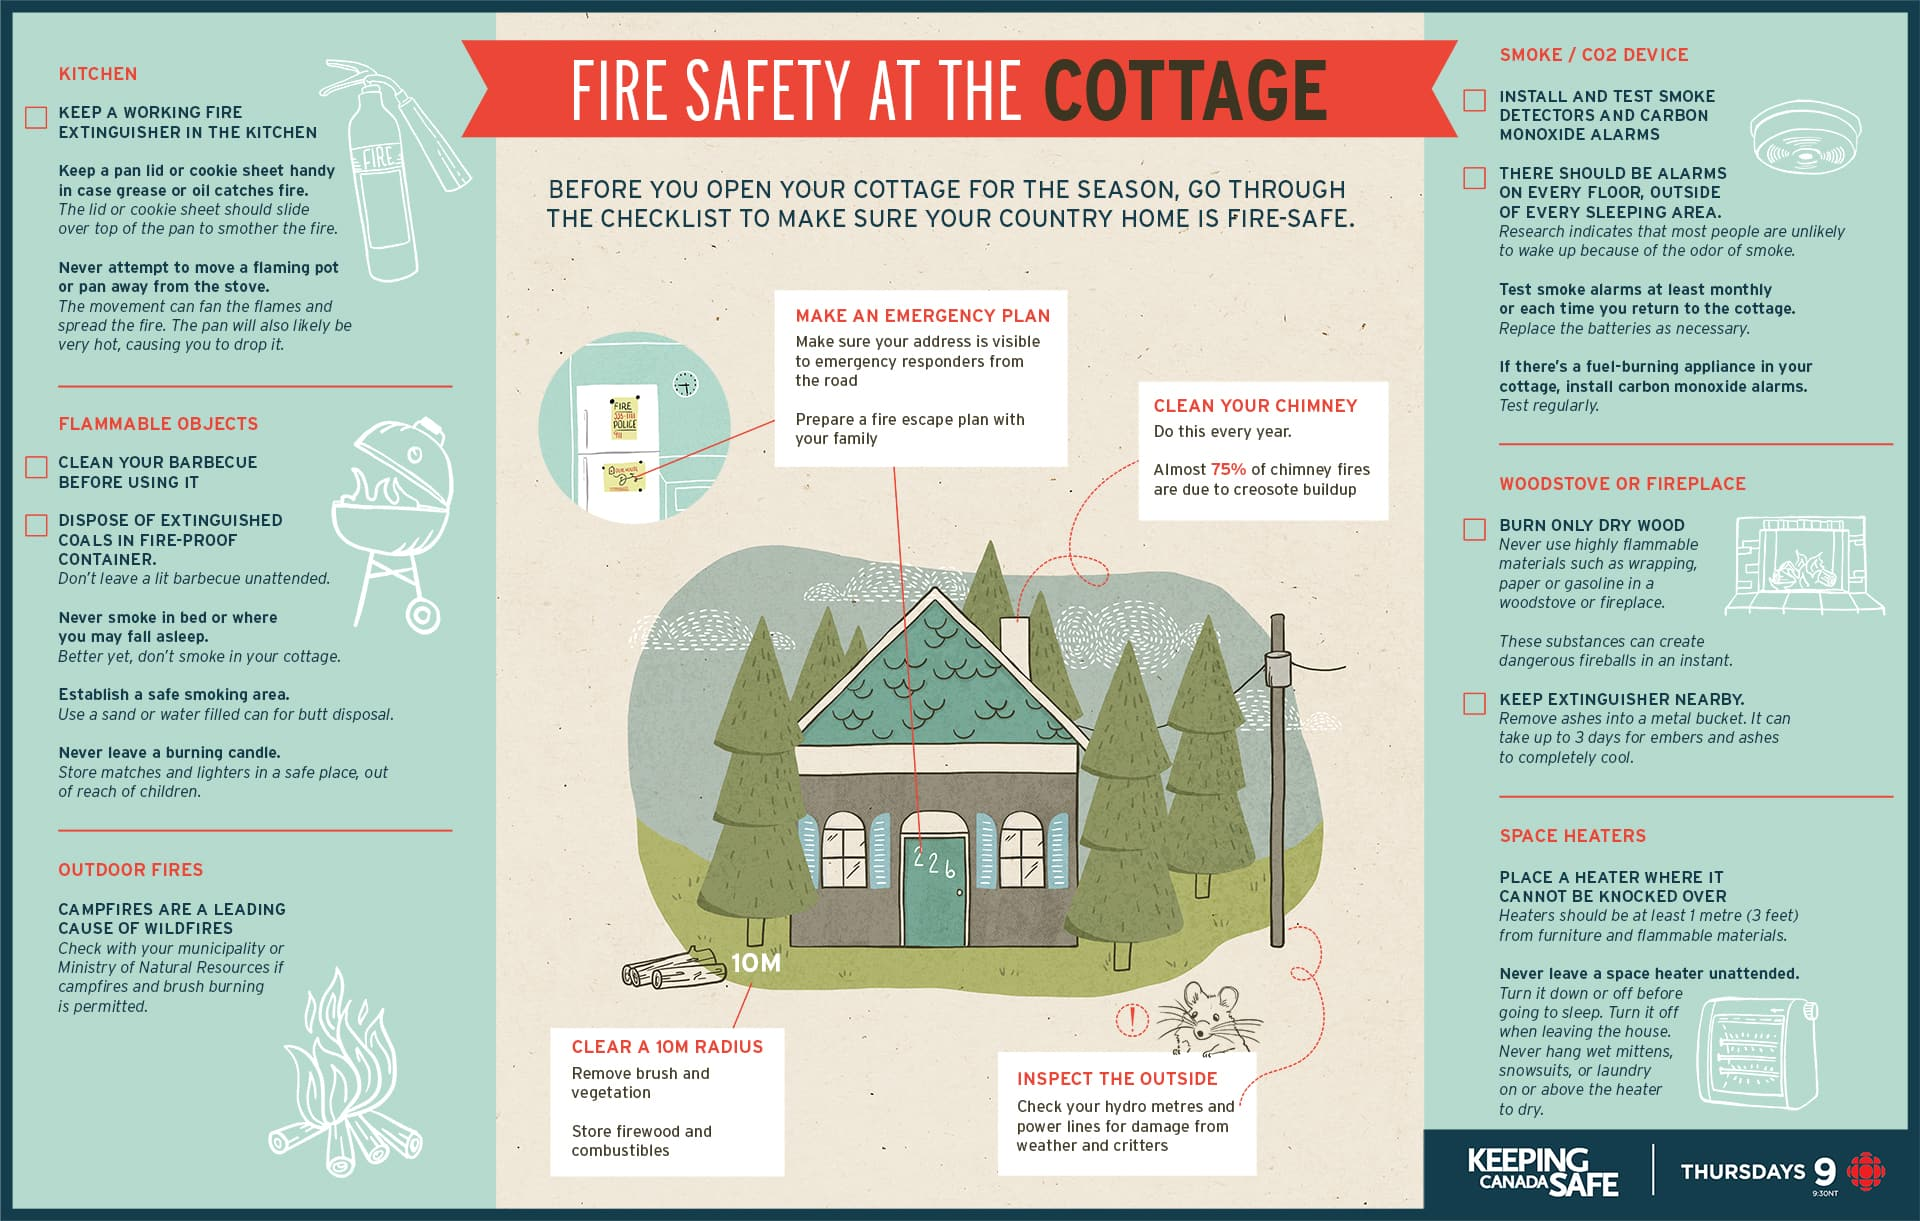 Fire safety at the cottage